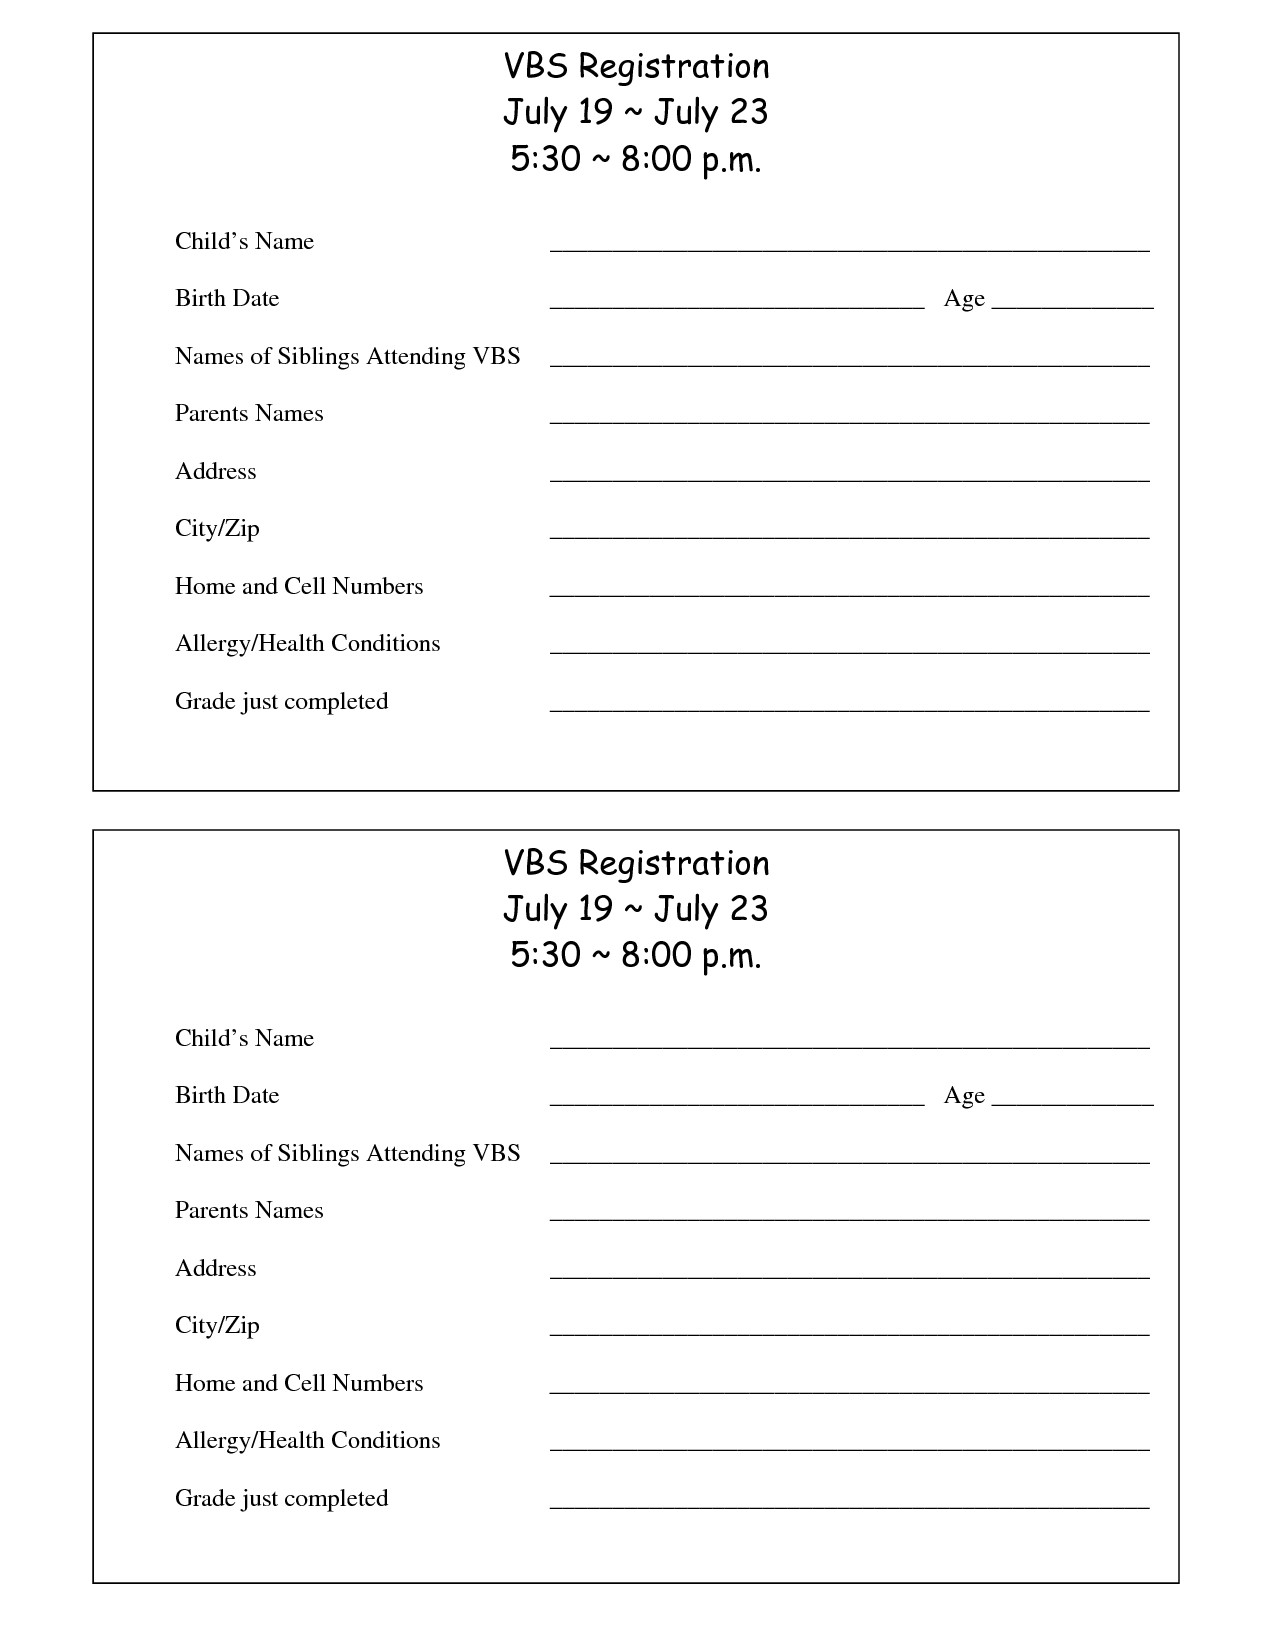 Registration form Template Free Printable Vbs Registration form Template